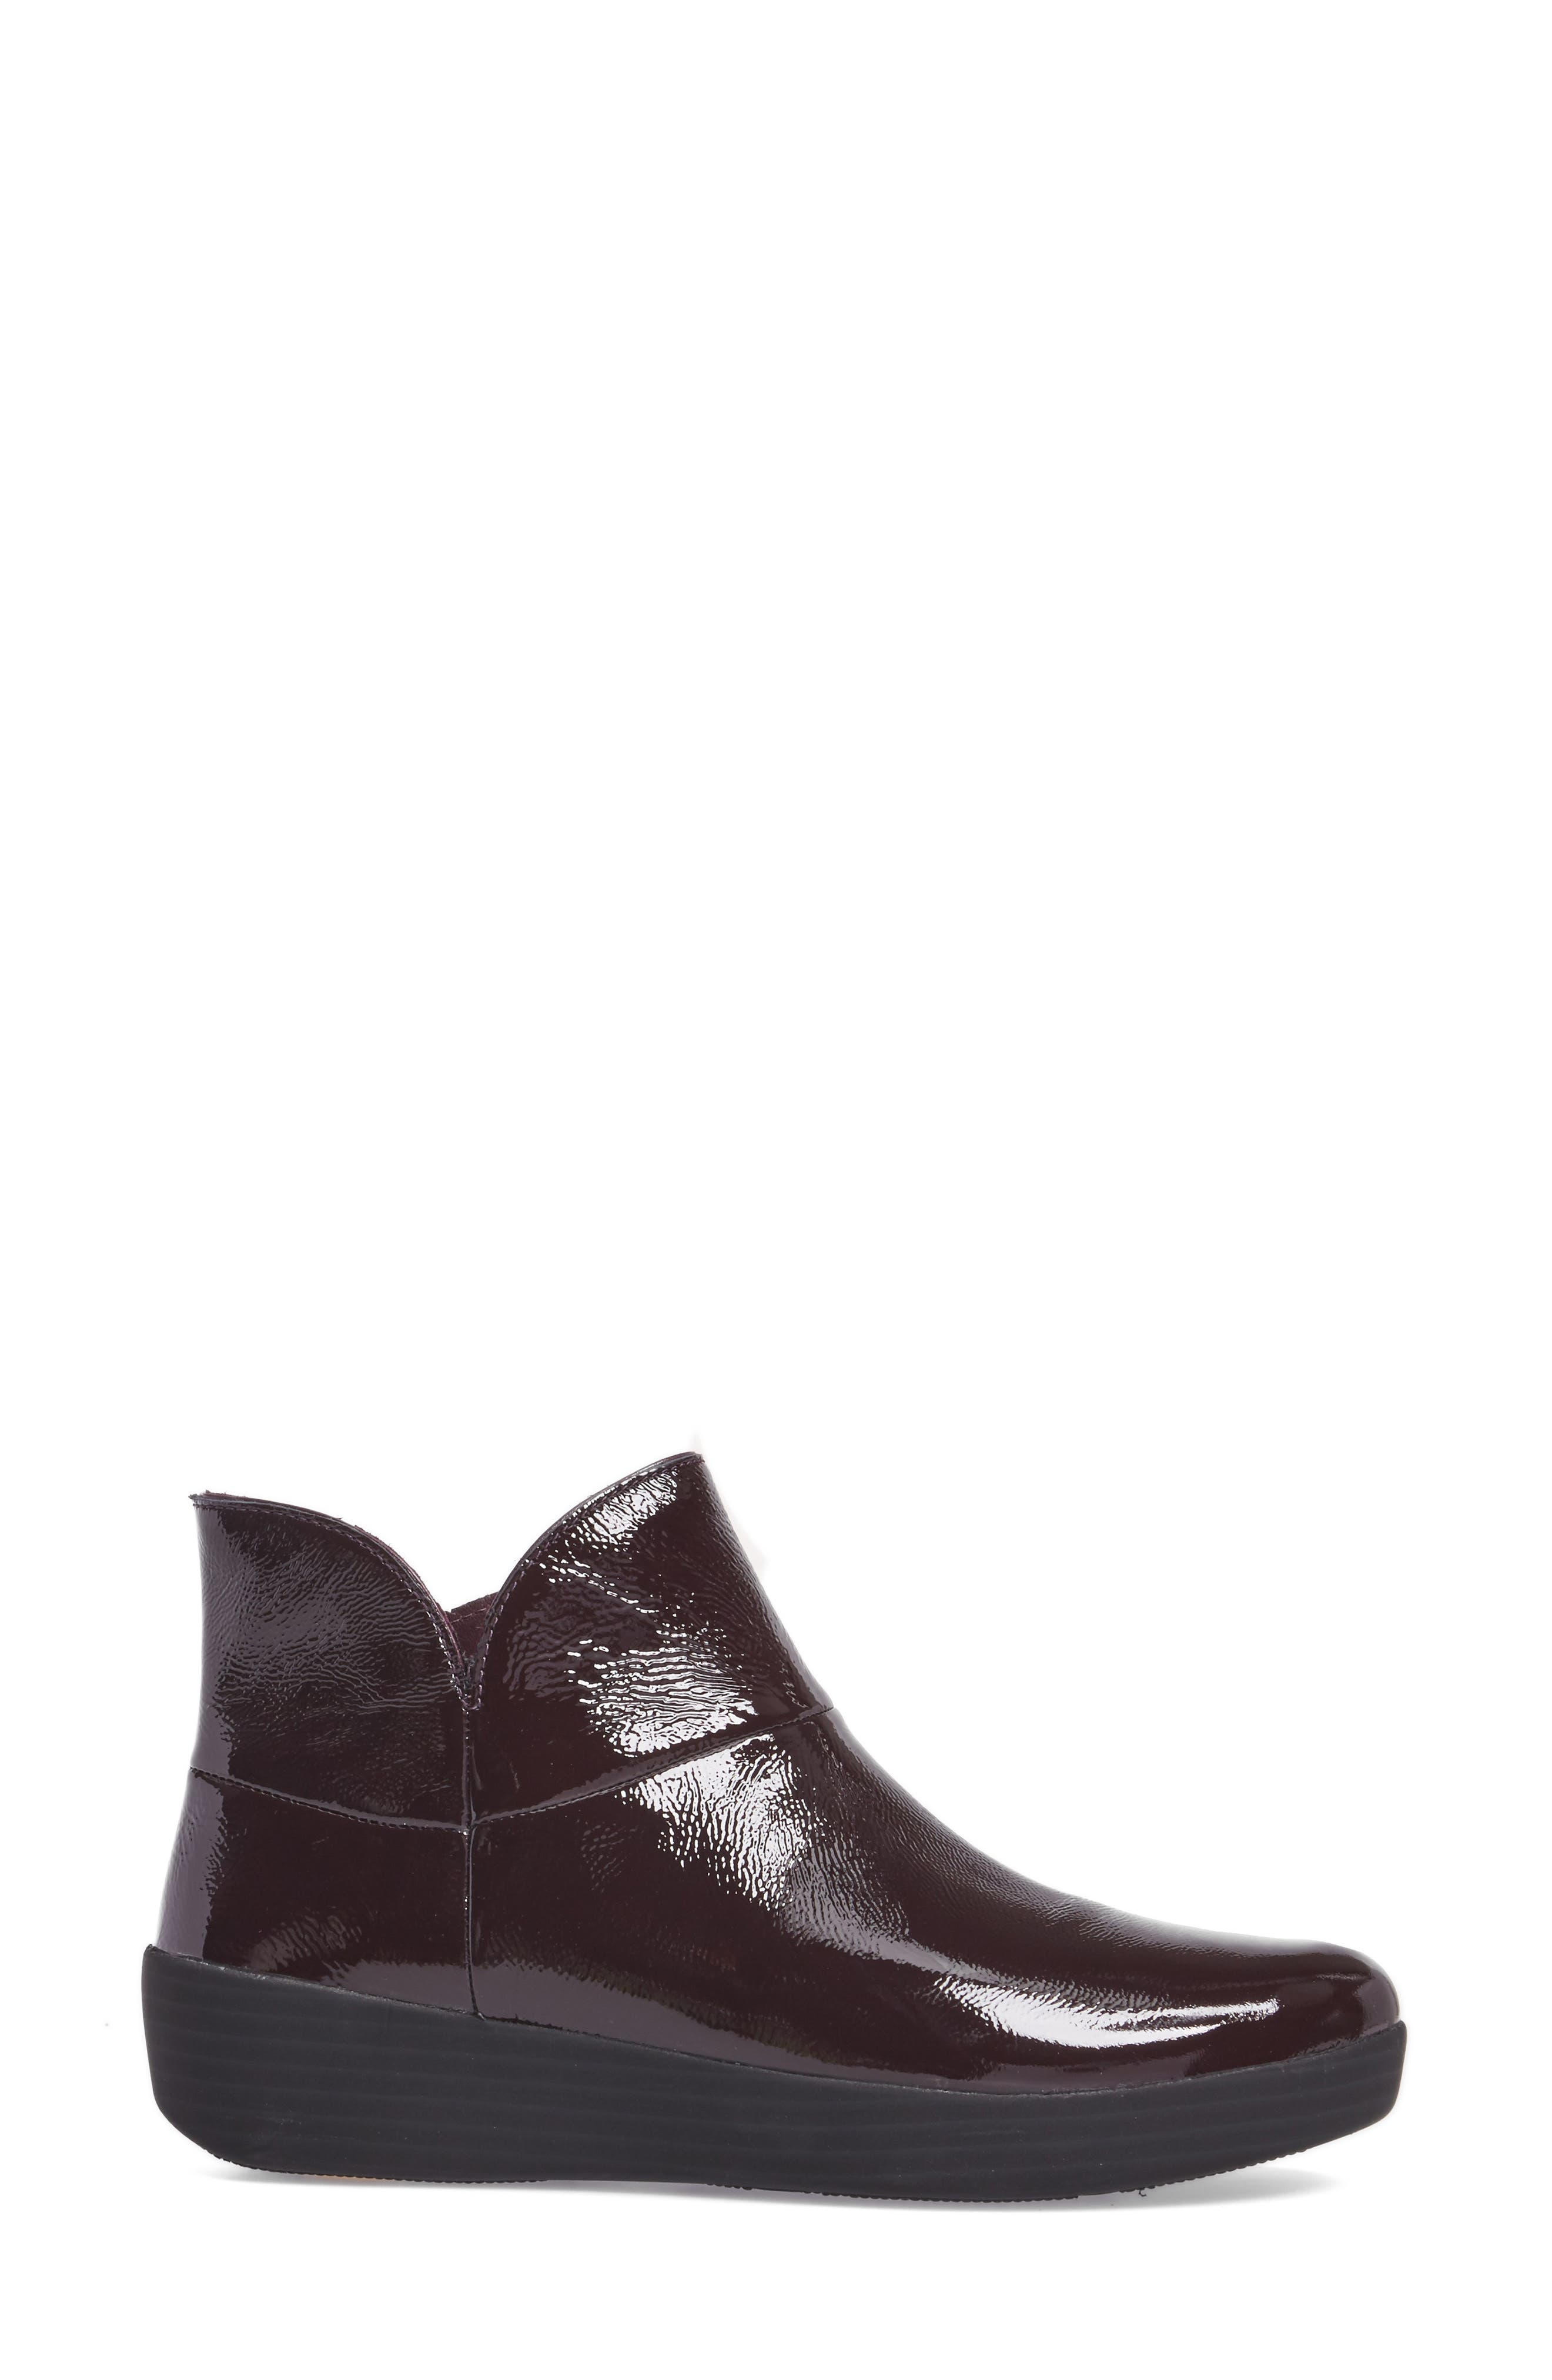 Supermod<sup>™</sup> II Ankle Boot,                             Alternate thumbnail 3, color,                             547